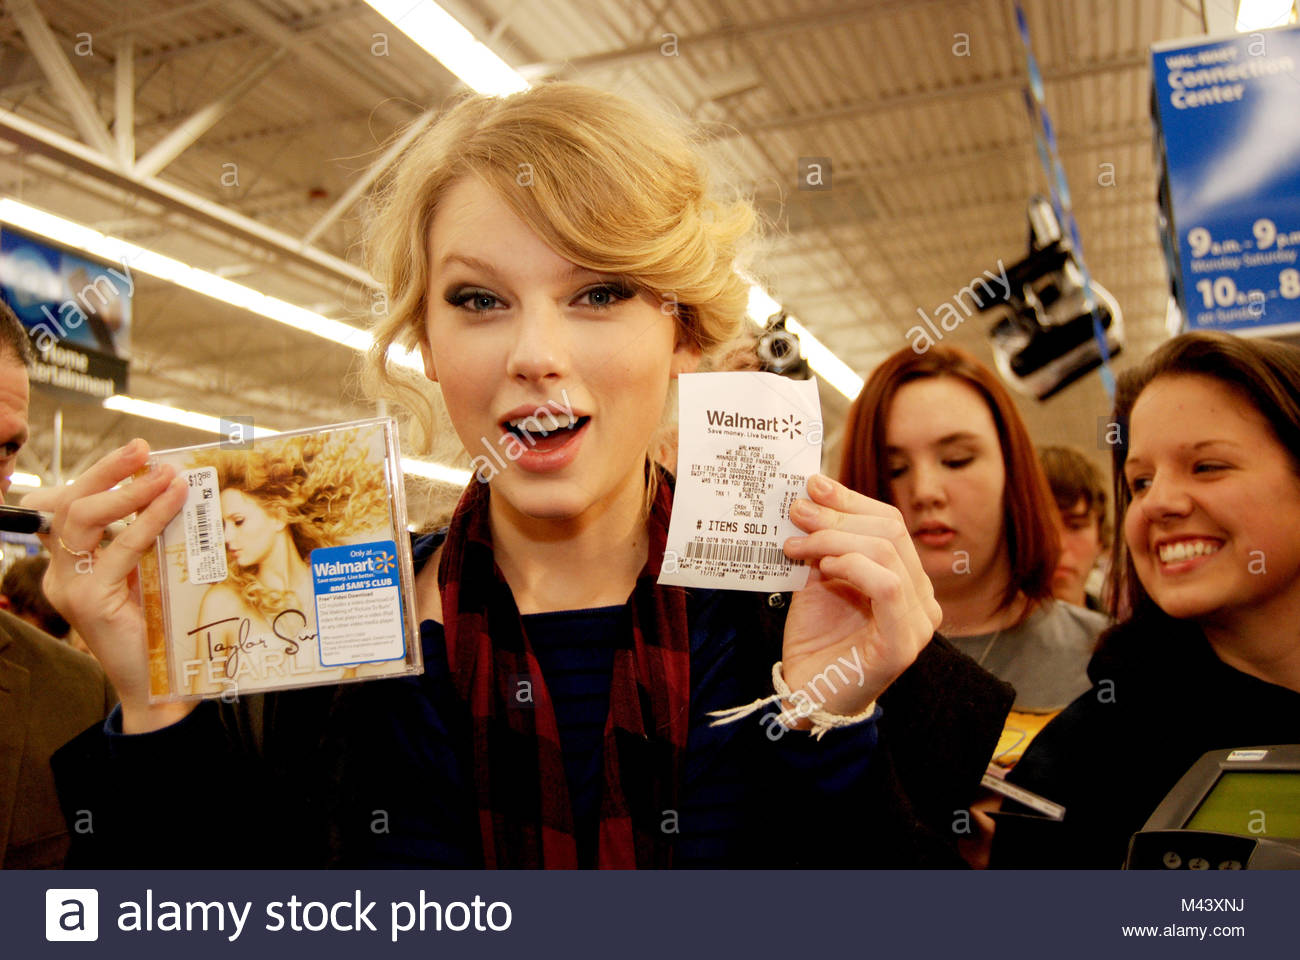 Taylor Swift Buys Her New Cd Fearless In Her Hometown Of Stock Photo Alamy